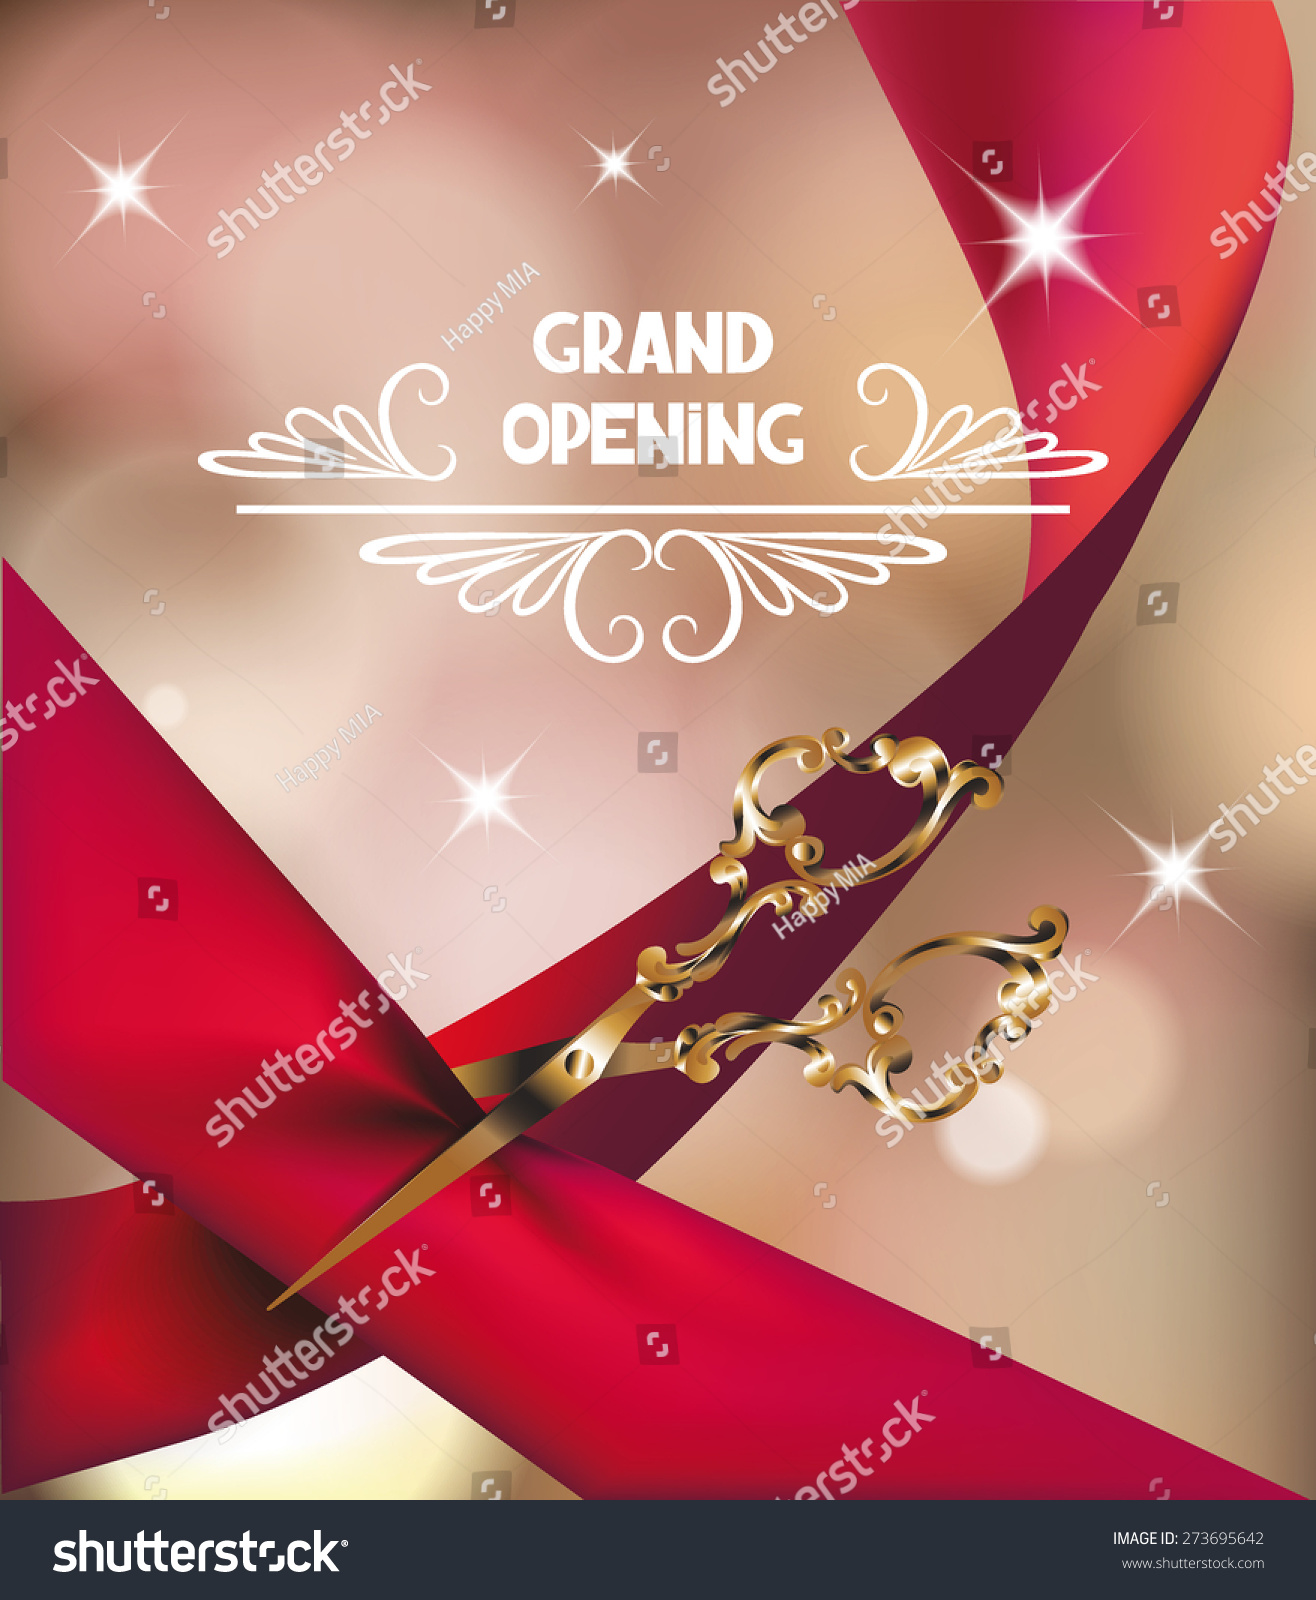 Grand Opening Invitation Card Silk Red Vector 273695642 – Grand Opening Invitation Cards